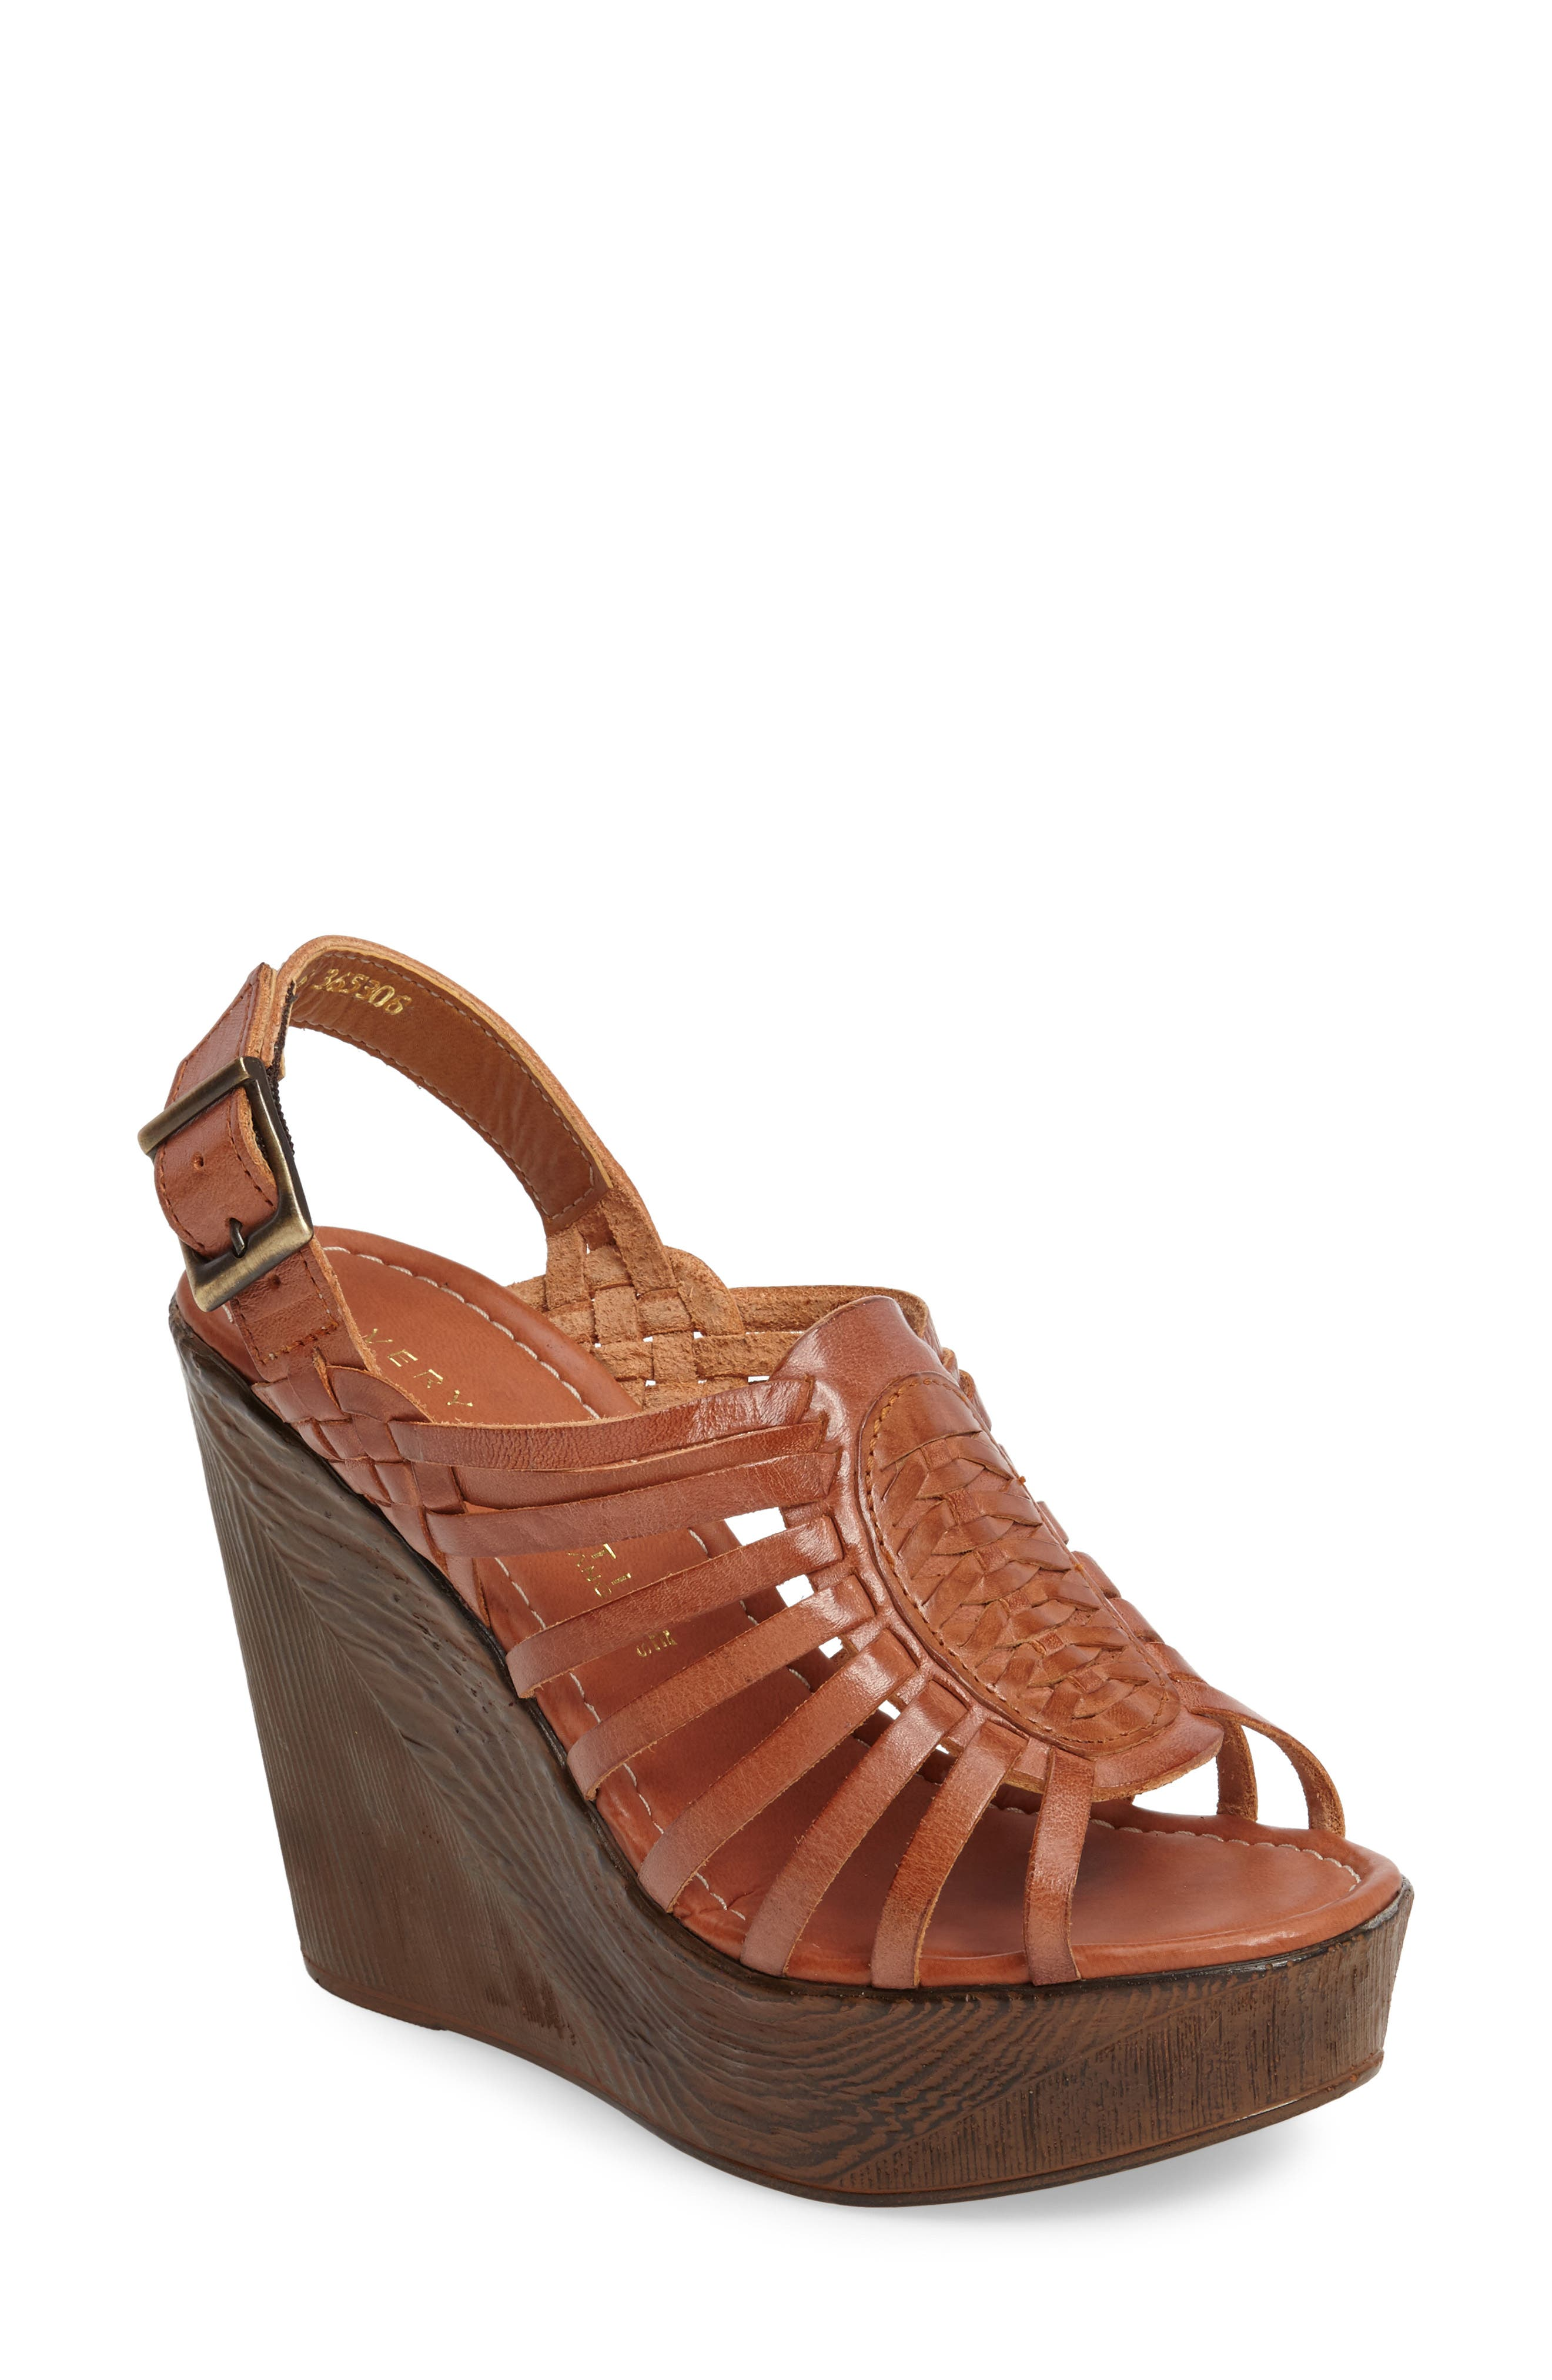 Prolific Wedge Sandal,                             Main thumbnail 1, color,                             Tan Leather